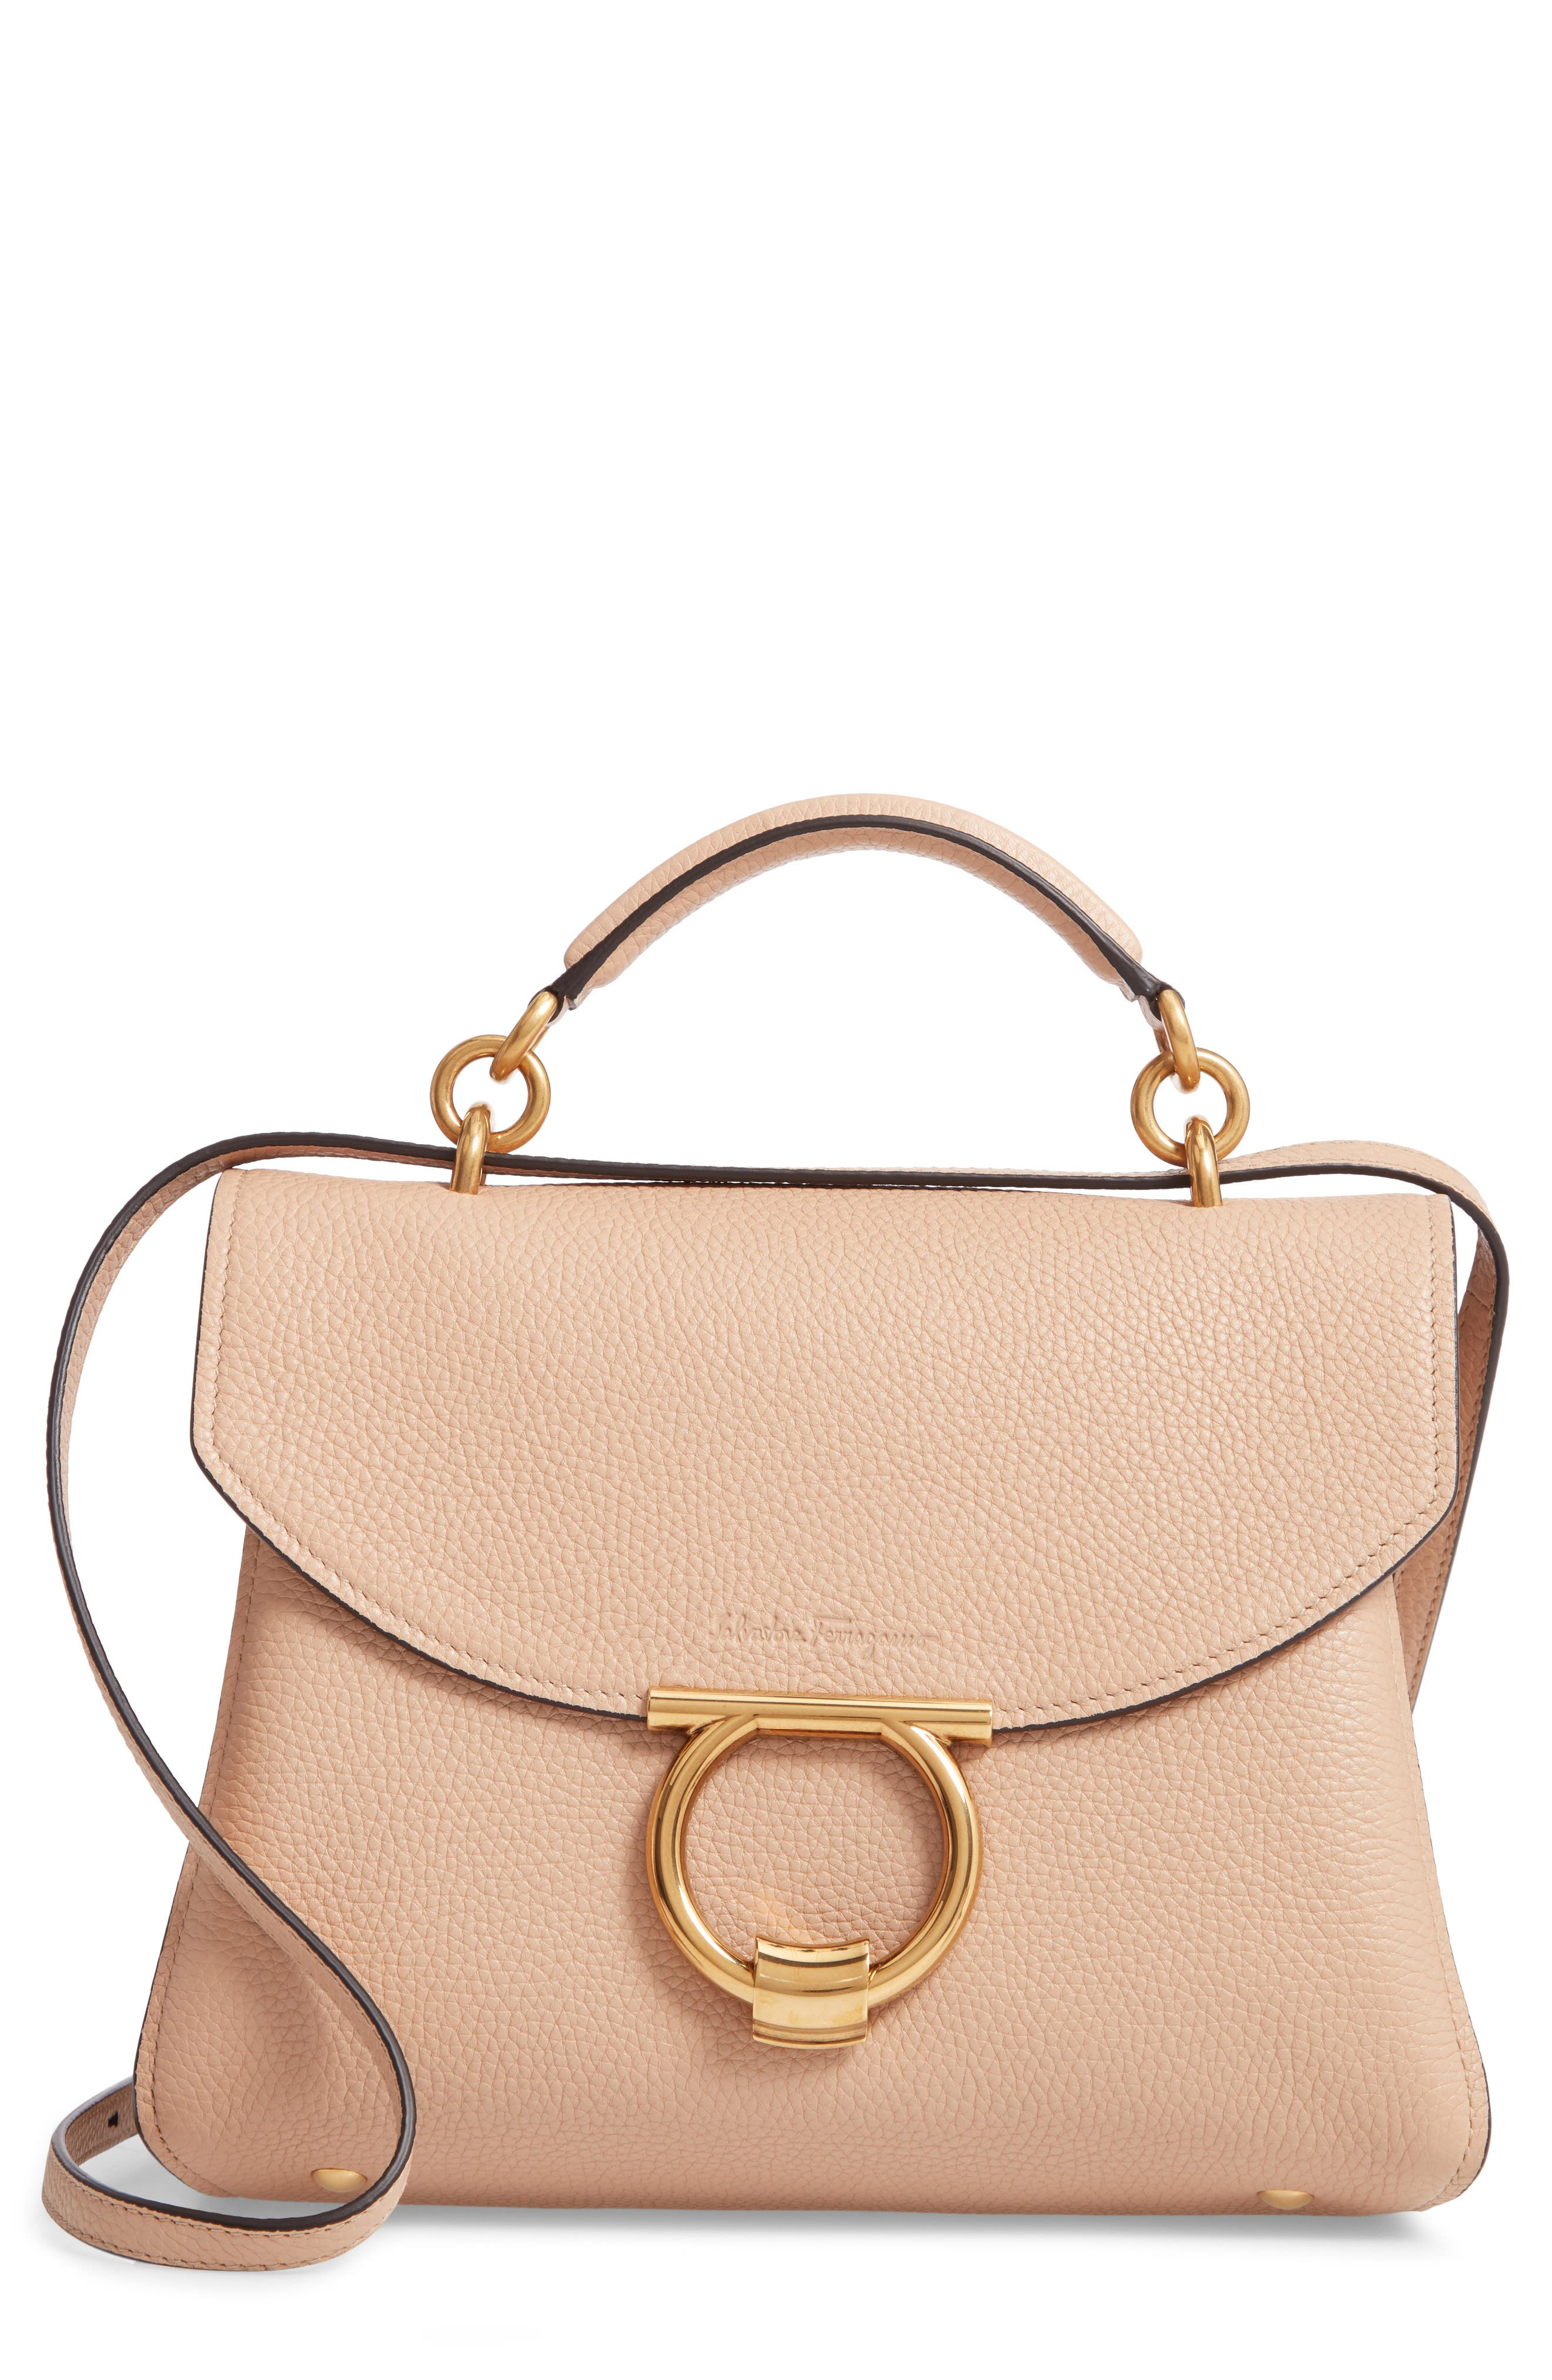 Small Margot Leather Top Handle Bag,                             Main thumbnail 1, color,                             ALMOND